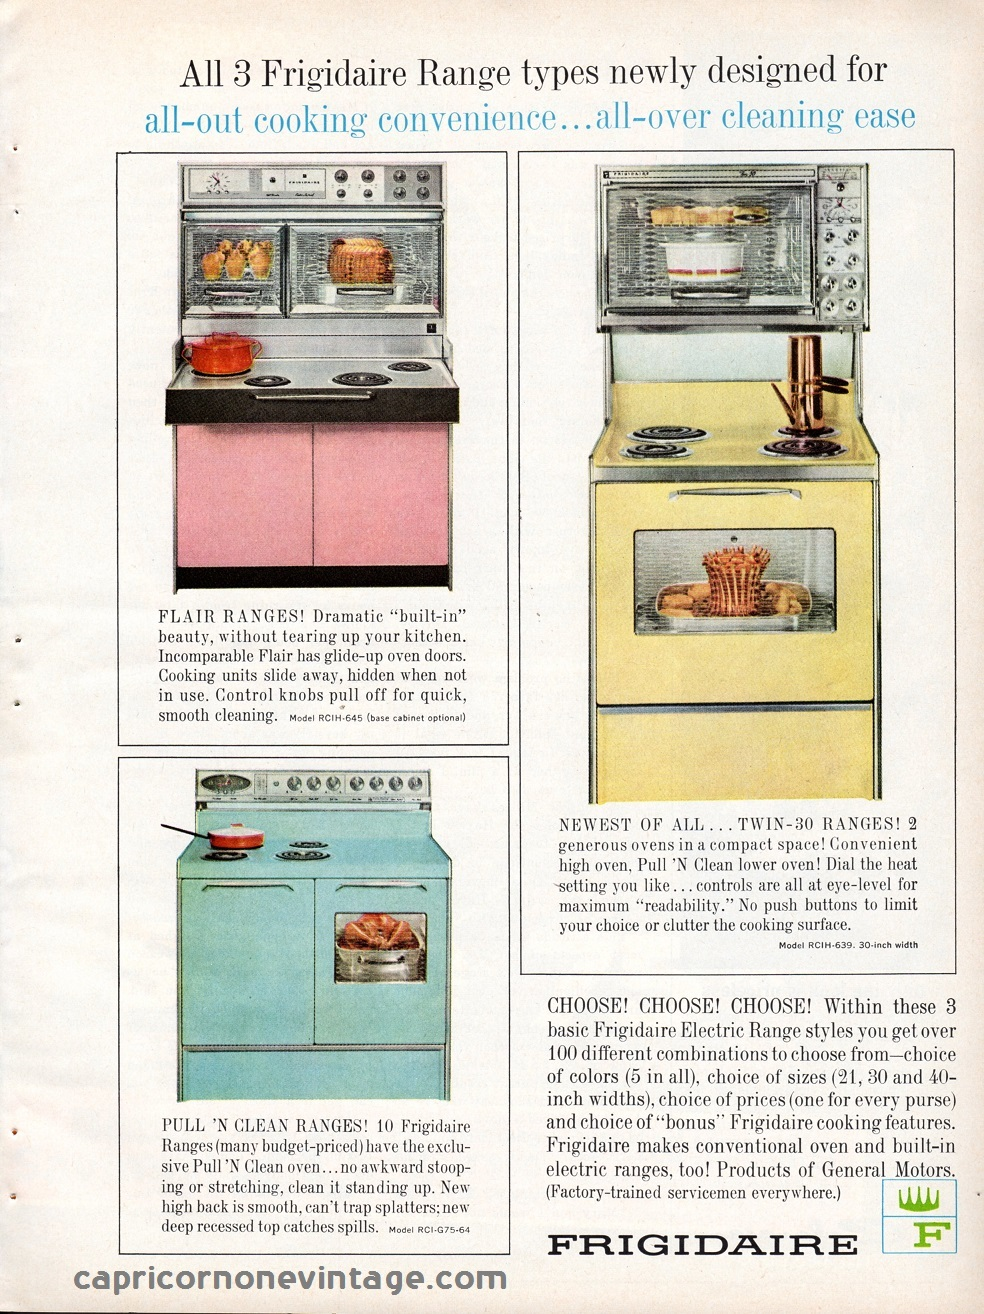 Vintage Advertising Retro Kitchen Decor 1960s Kitsch Electric Range